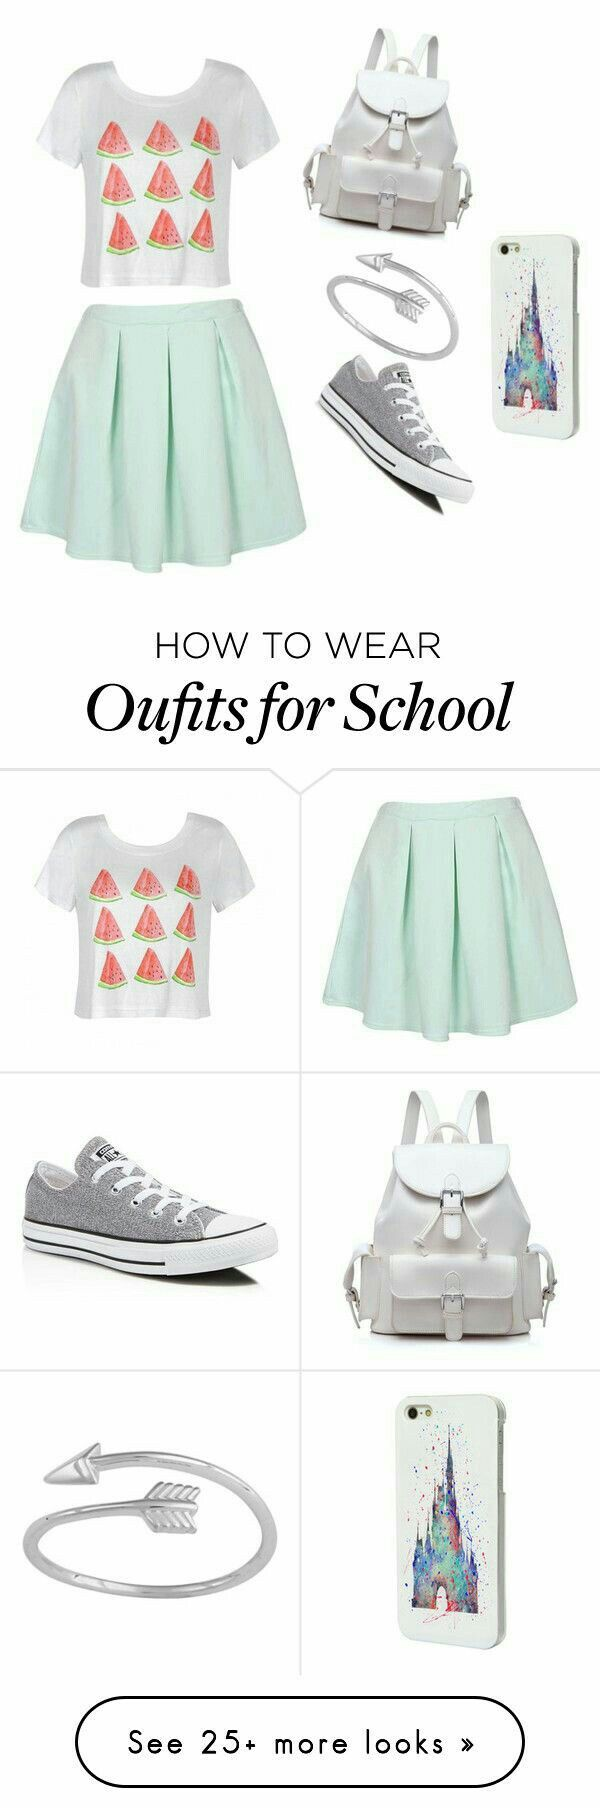 I have uniforms in my school...but would love to wear this instead. And that phone case!